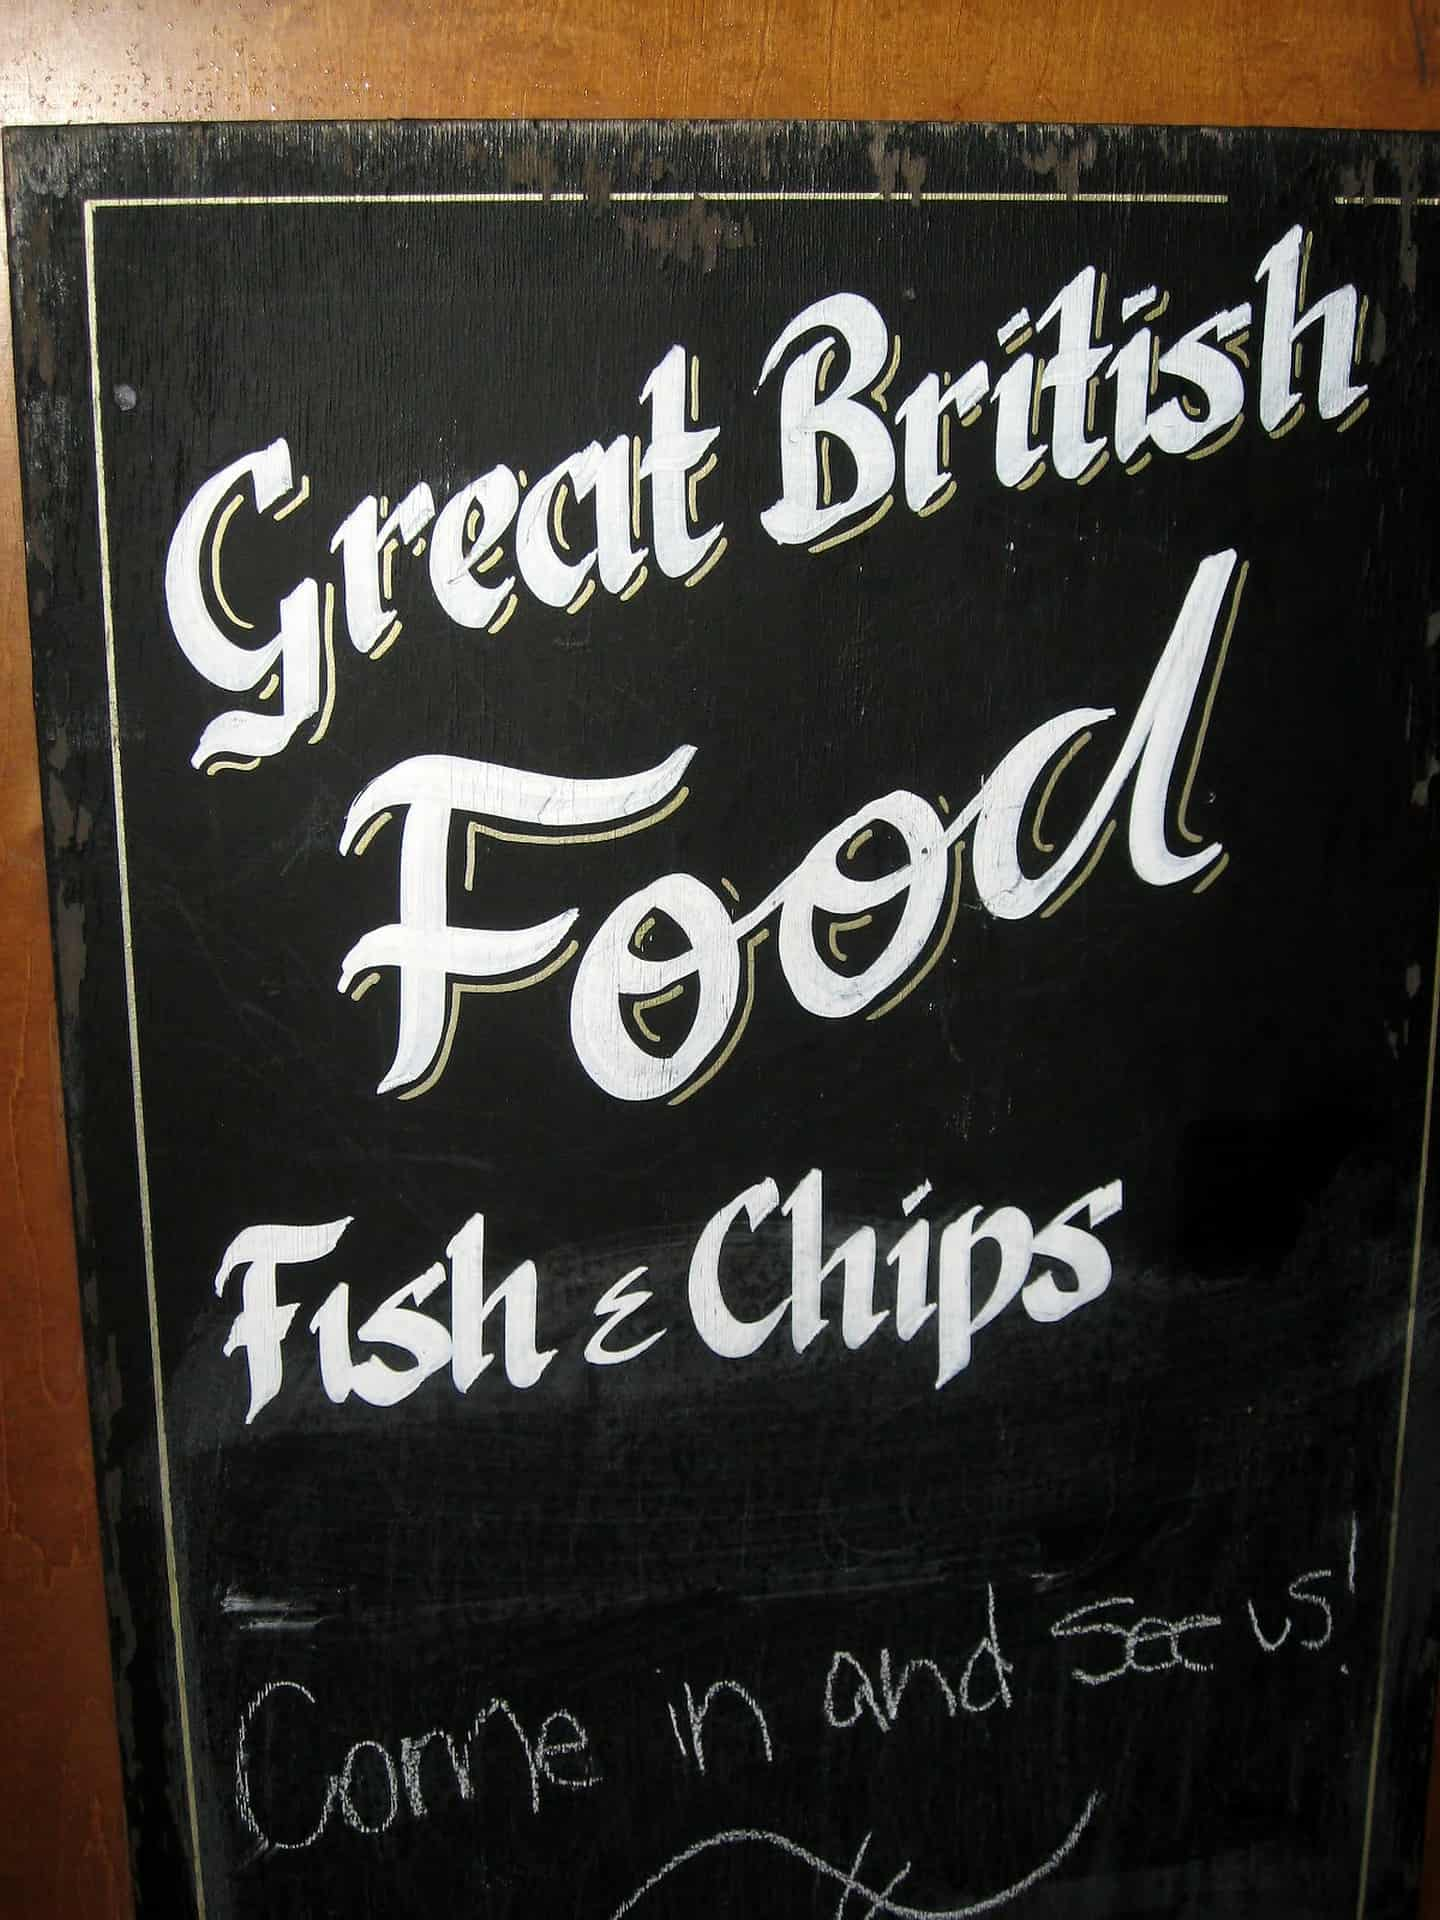 fish-and-chips-london-england-uk-foodie